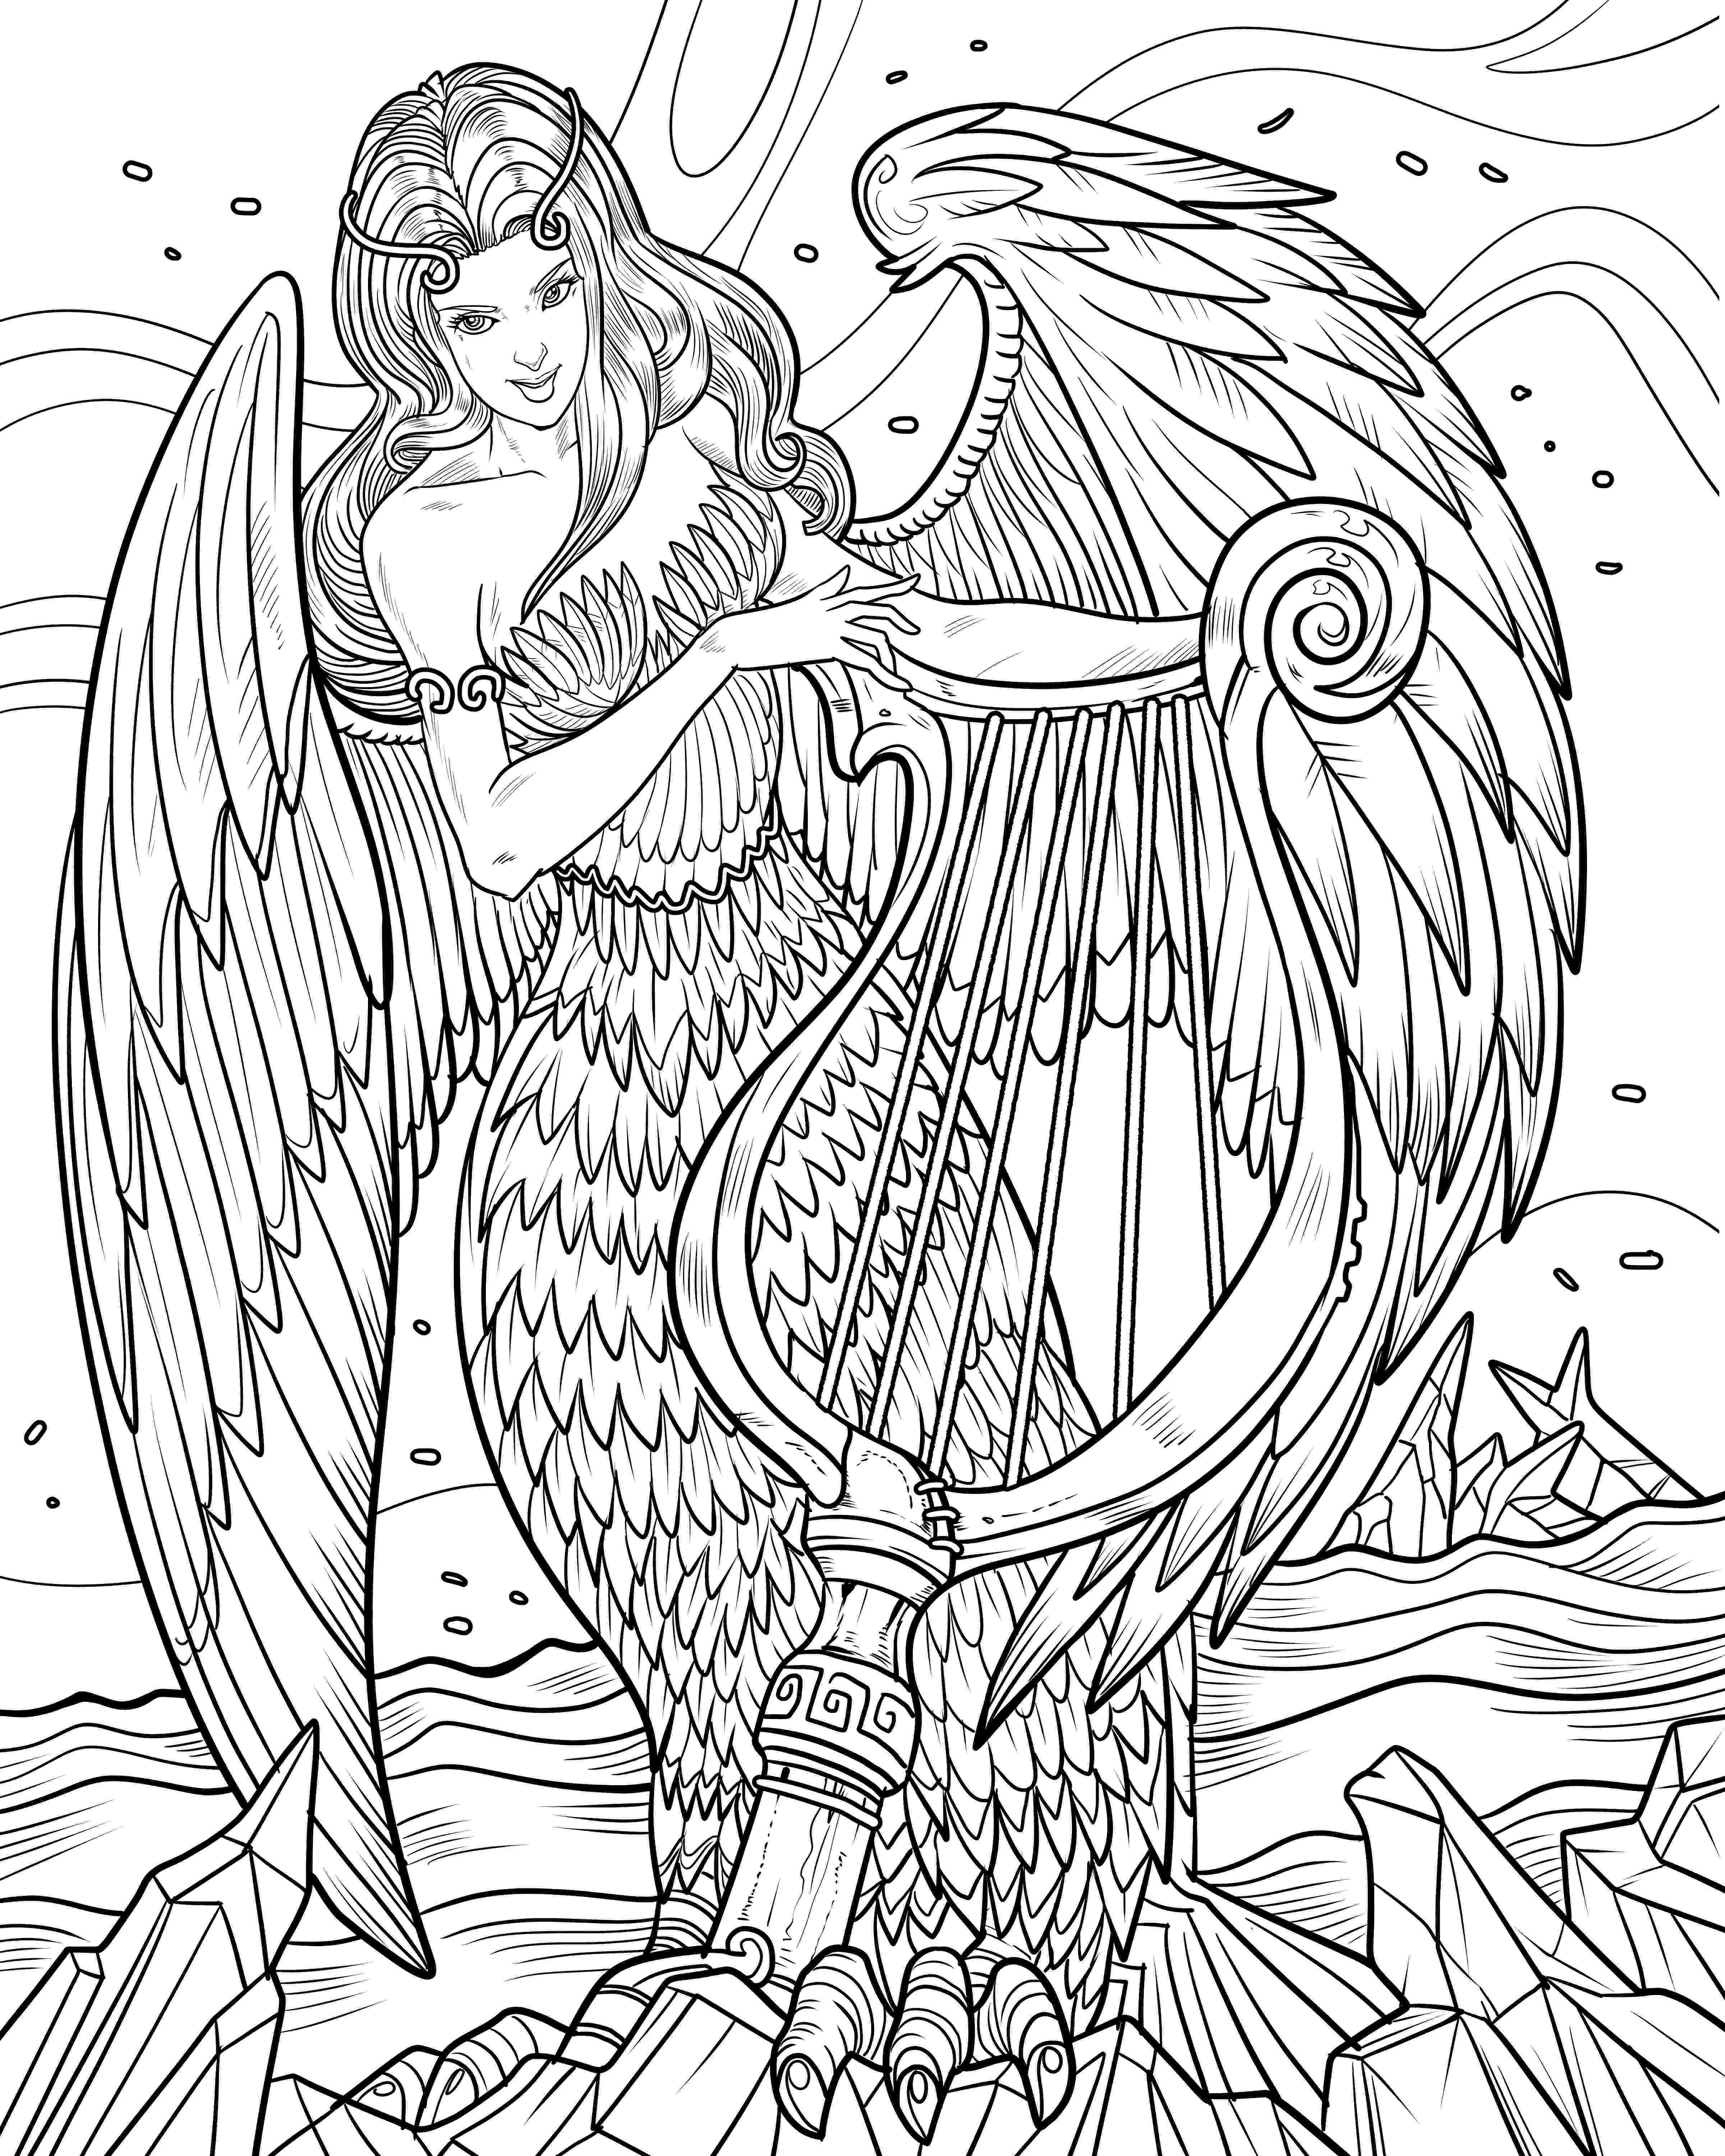 coloring book for adults where to adult coloring pages to print to download and print for free for coloring to book where adults